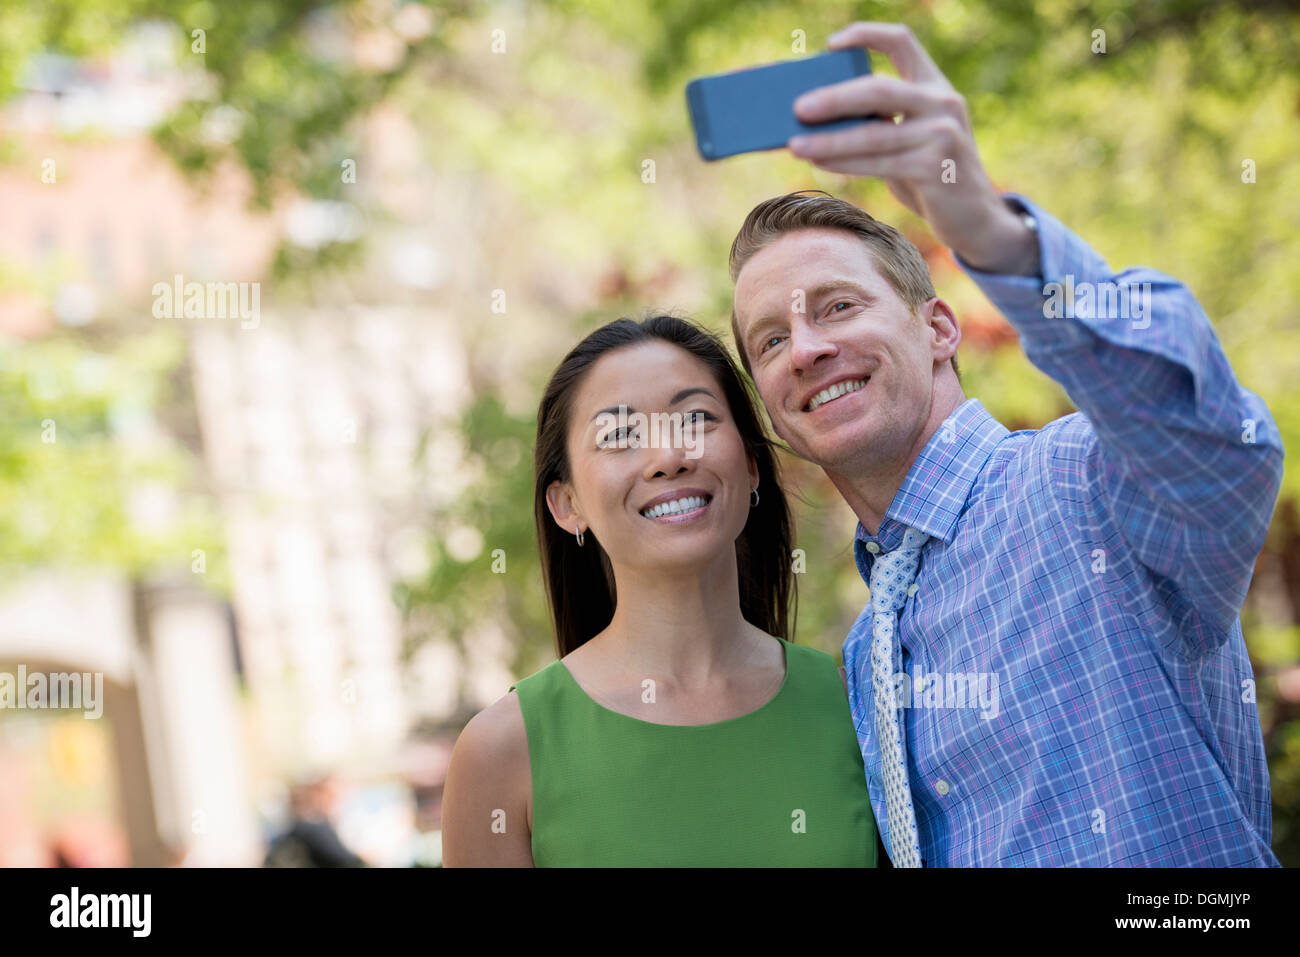 A couple, a man and woman taking a selfy with a smart phone. - Stock Image